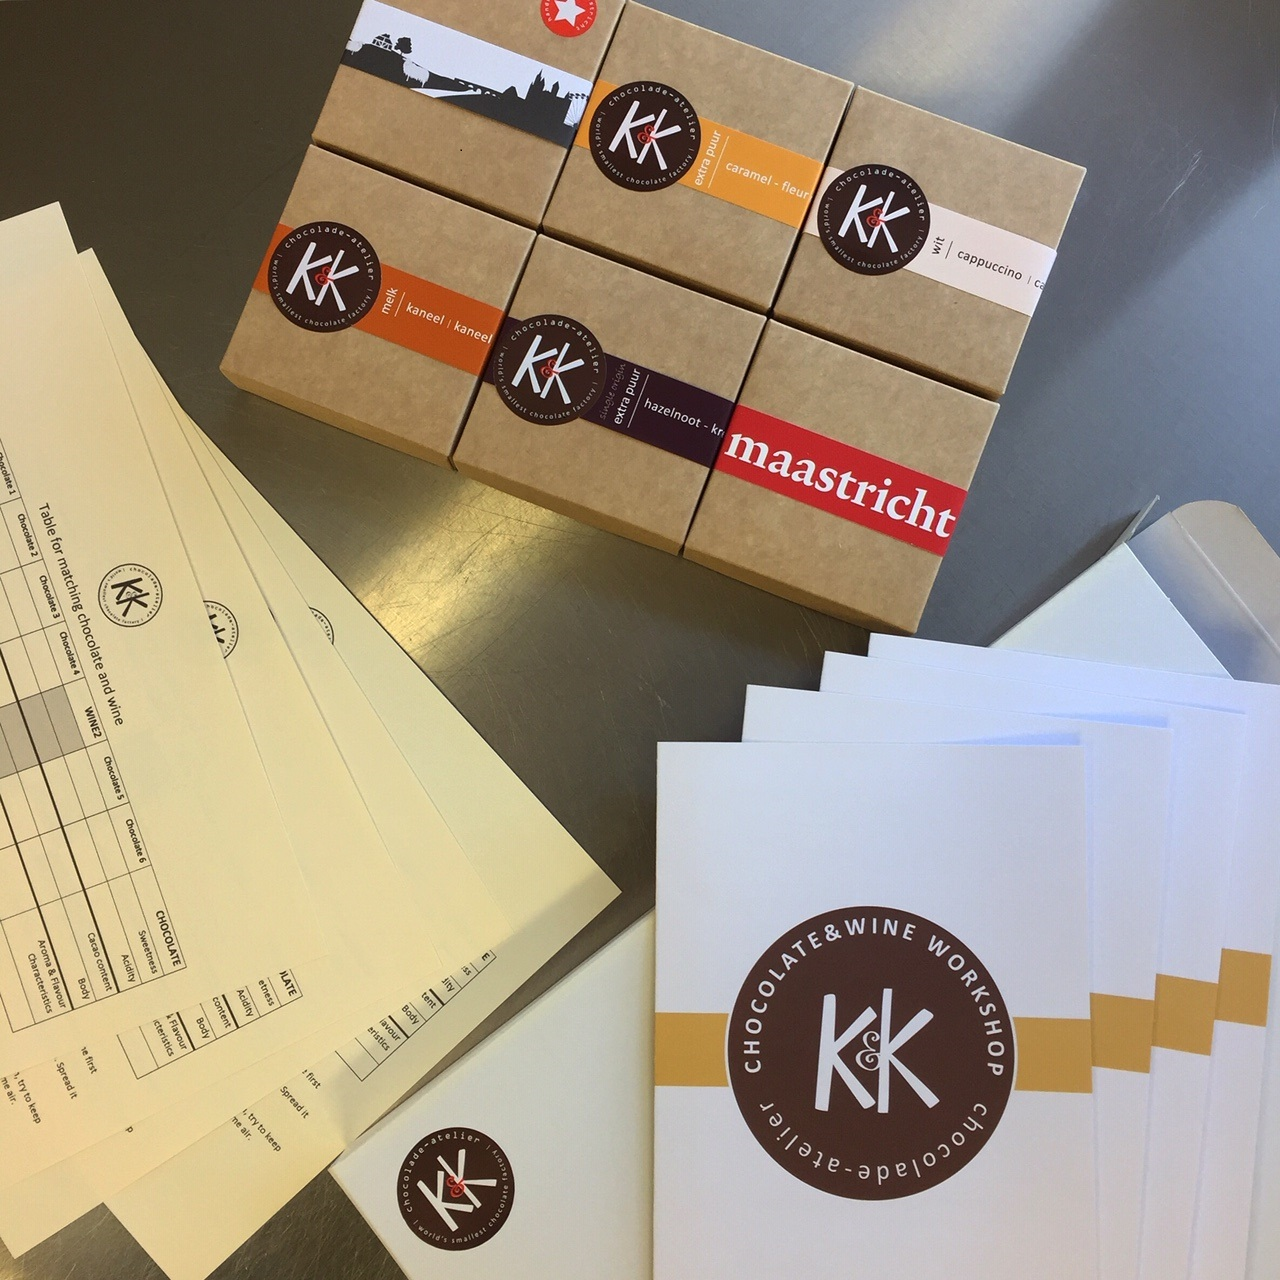 chocolate and wine online workshop material